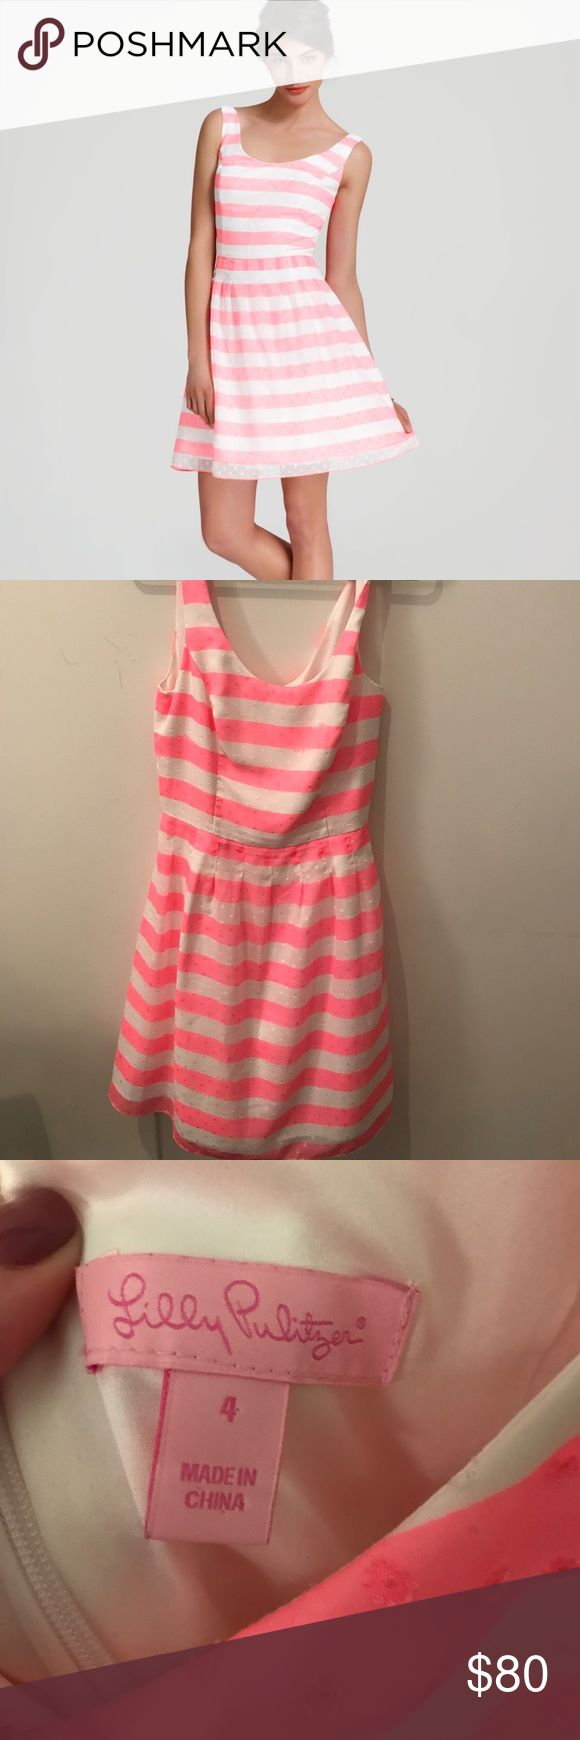 Lilly Pulitzer Pink and White Dress Like new. The pink is a beautiful bright pink. Lilly Pulitzer Dresses Midi